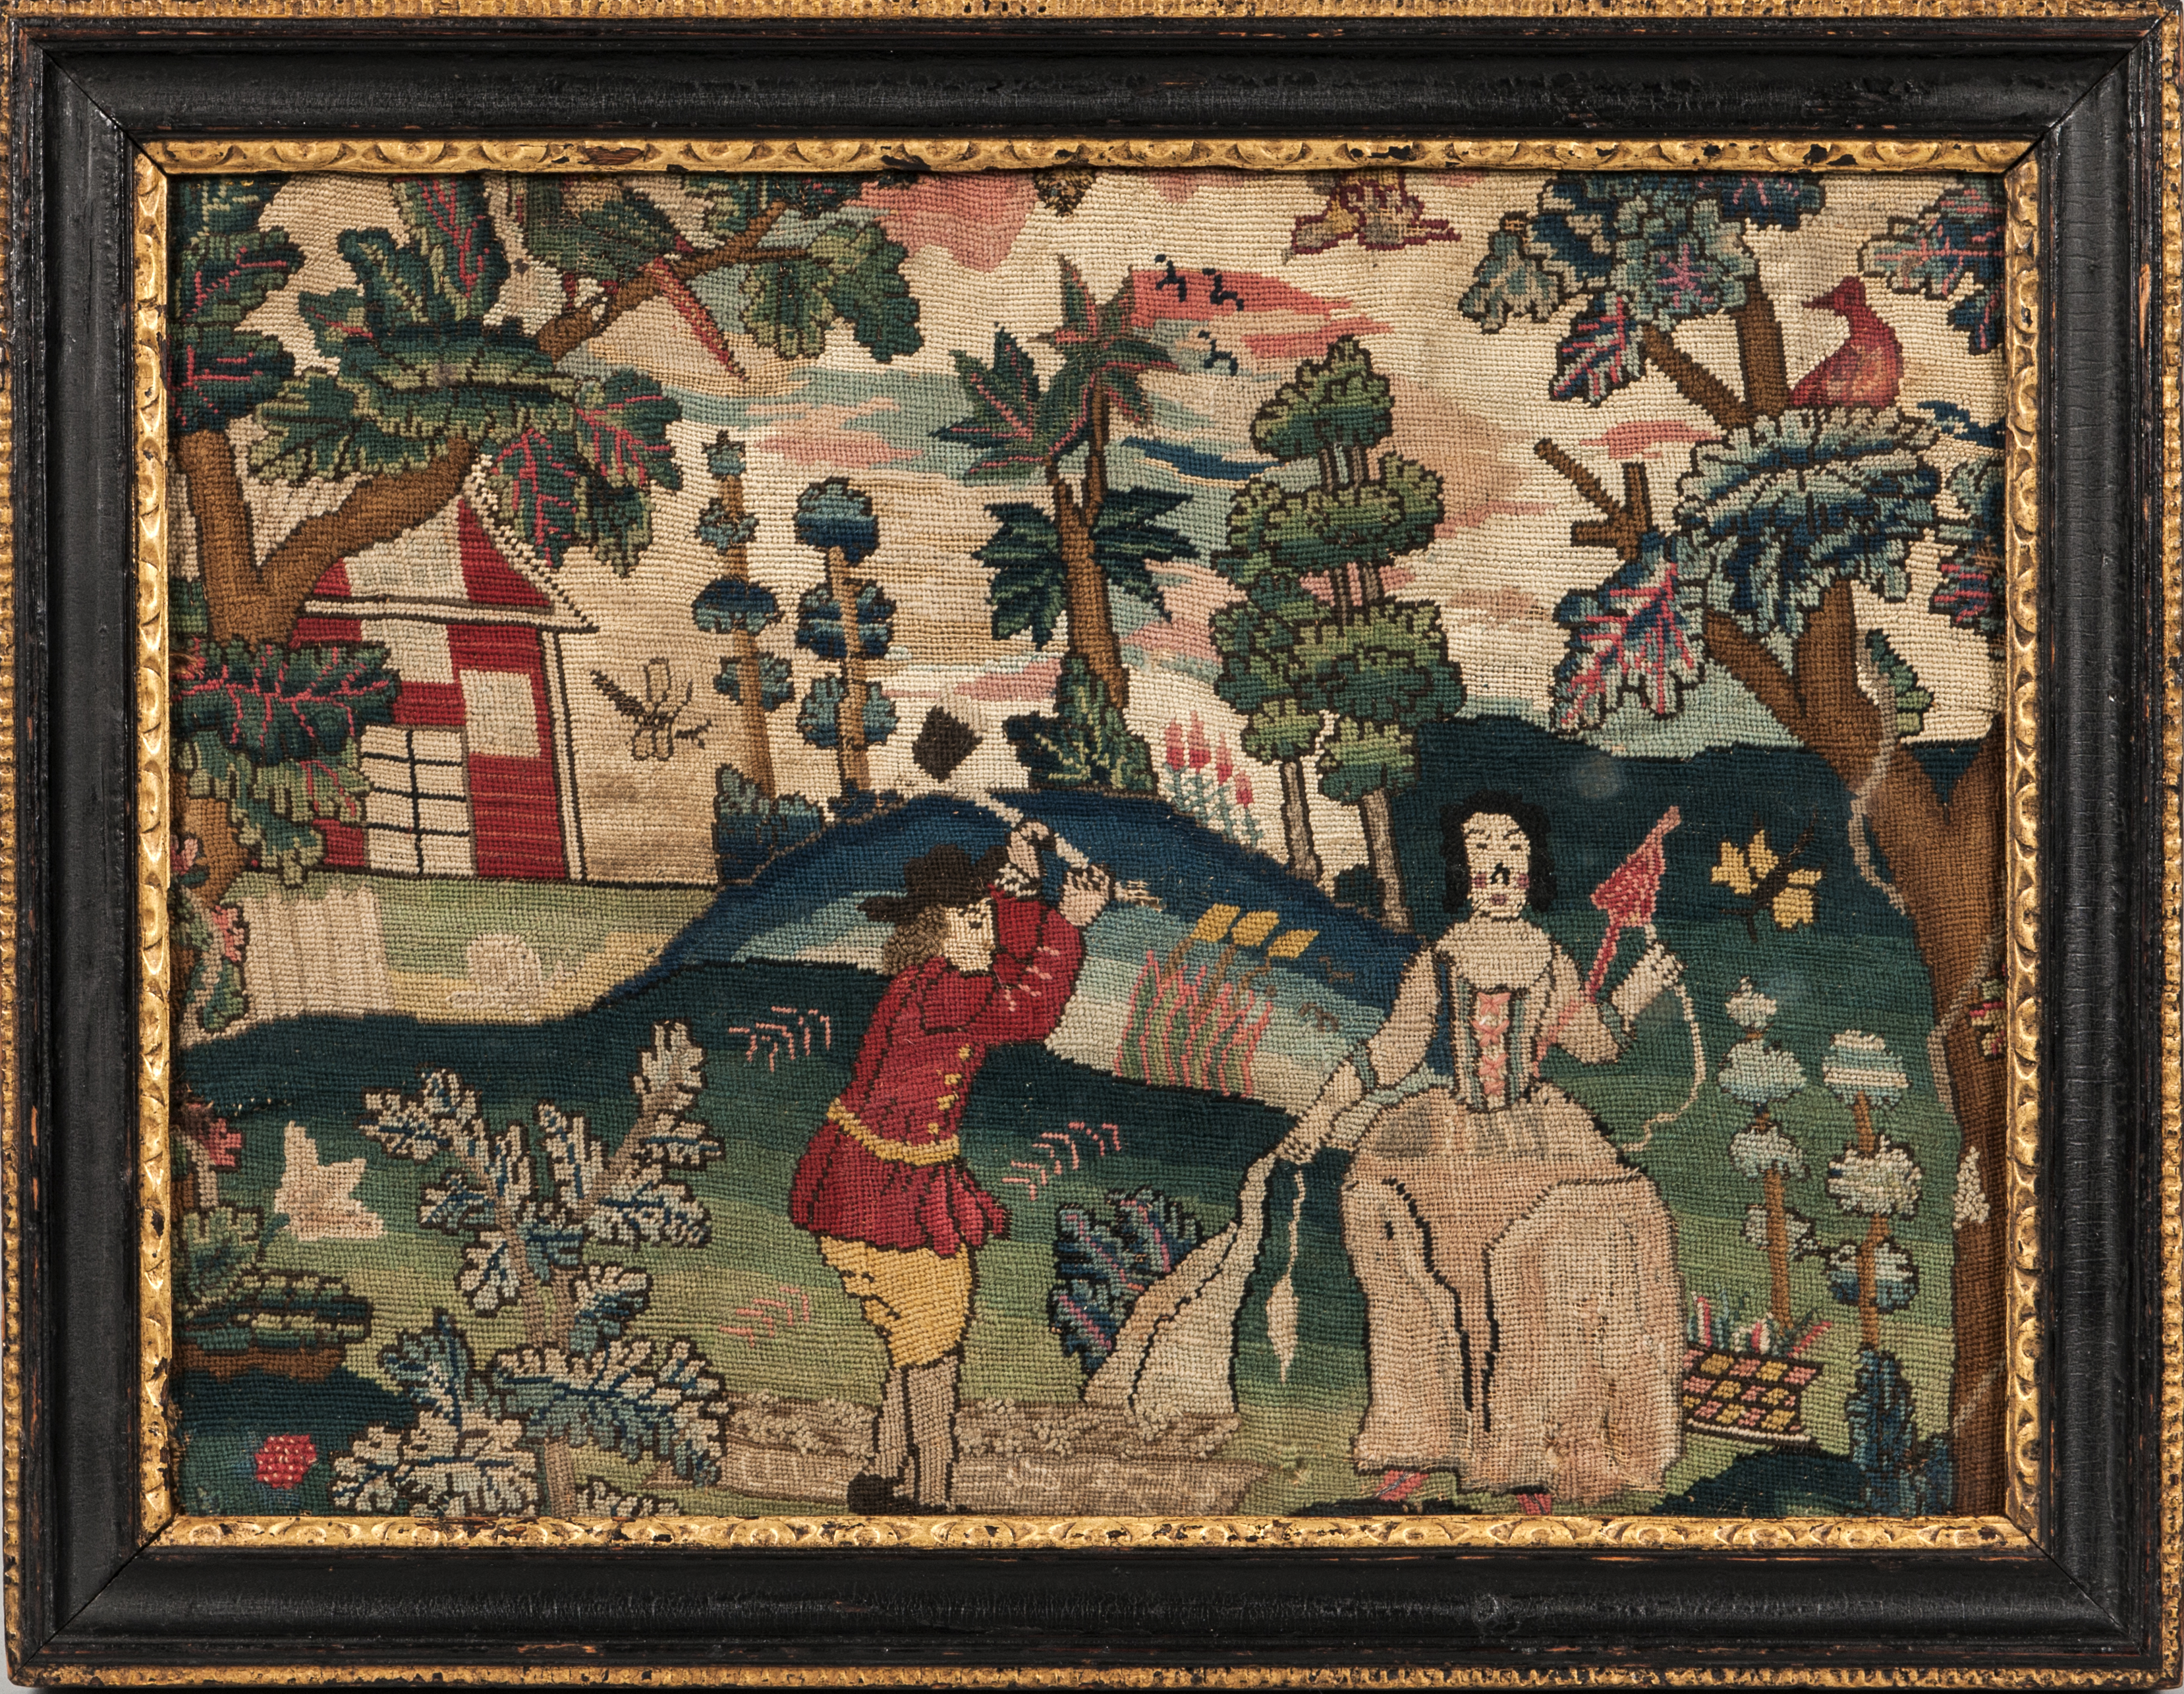 Needlwork Allegorical Picture, England, early 18th century (Estimate: $3,000-5,000)